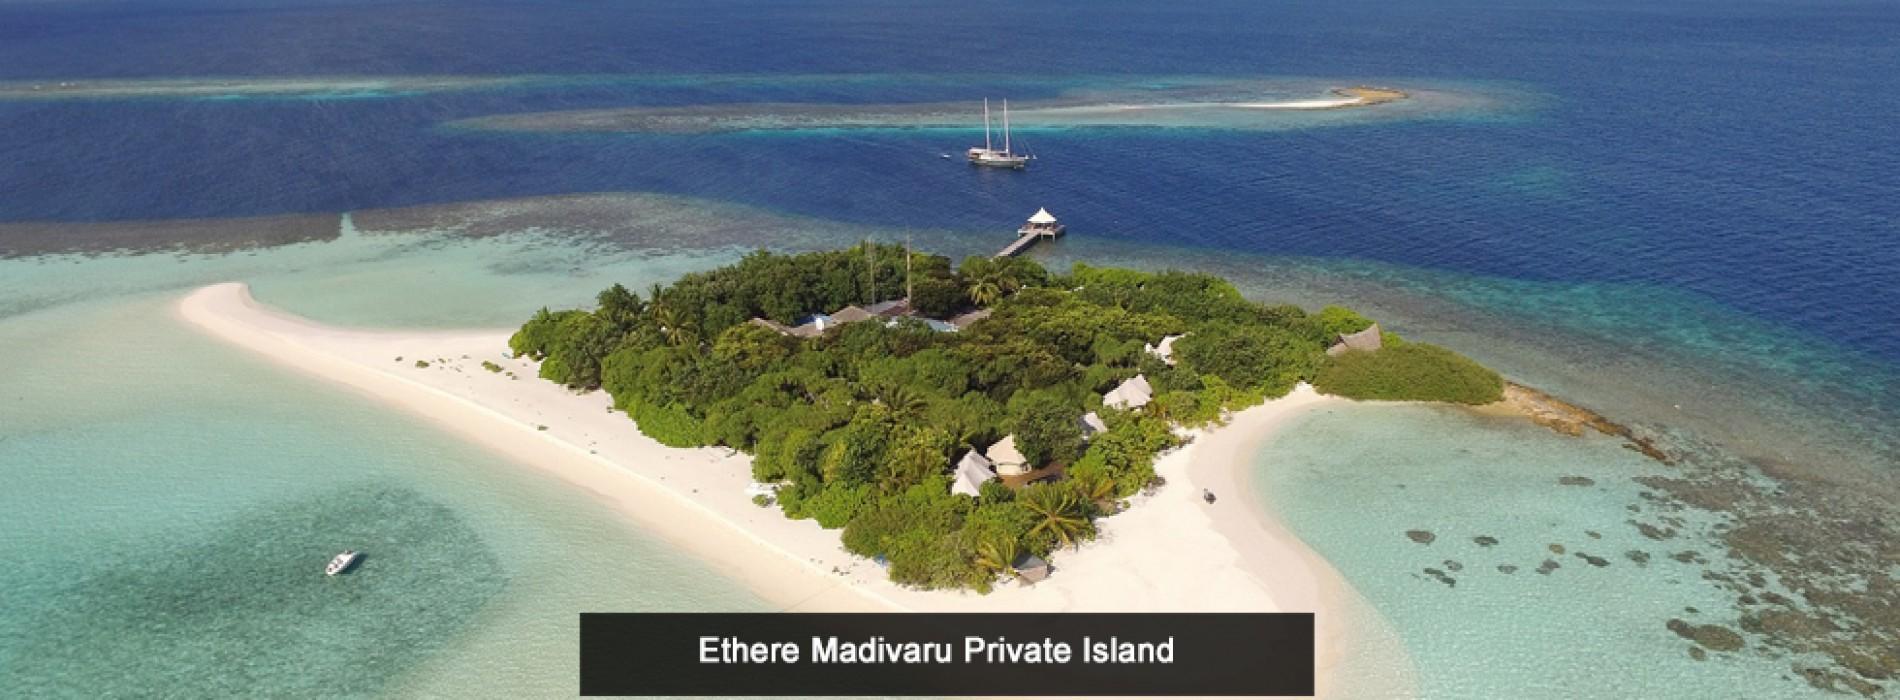 Emaar Hospitality Group expands to South Asia with 'Address Madivaru Maldives Resort + Spa'